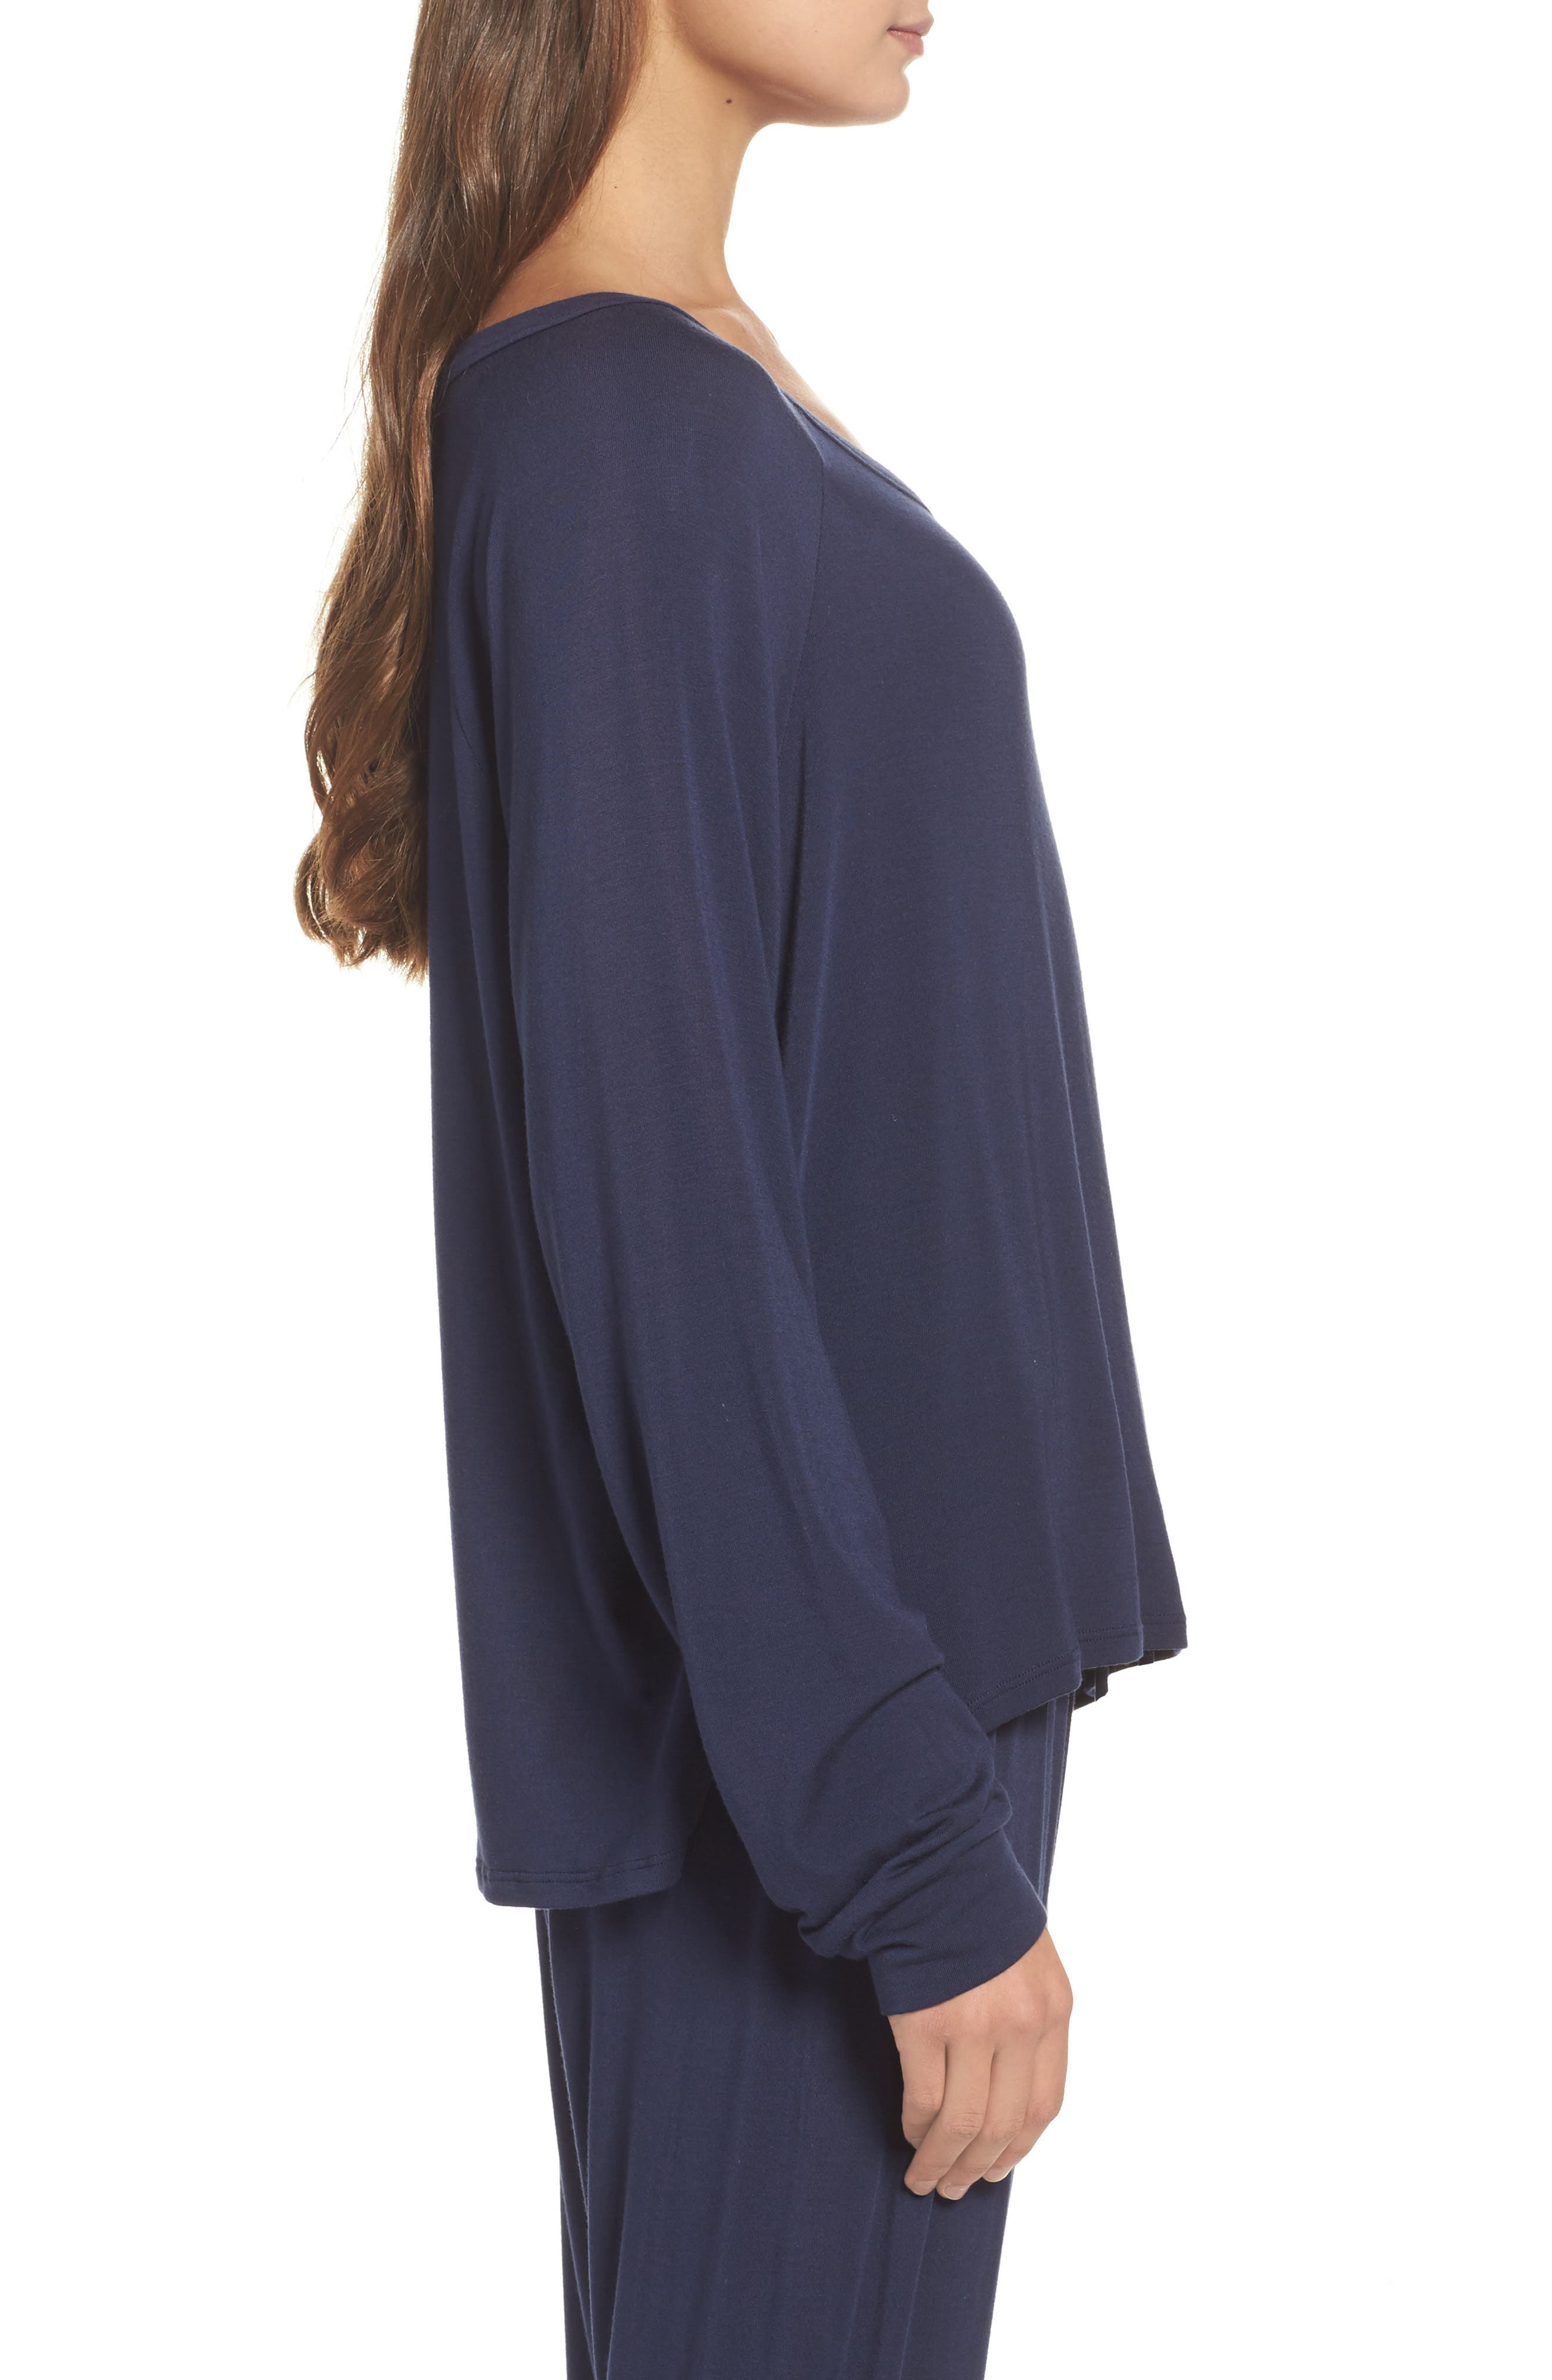 Amber Long Sleeve Top,                             Alternate thumbnail 3, color,                             Twilight